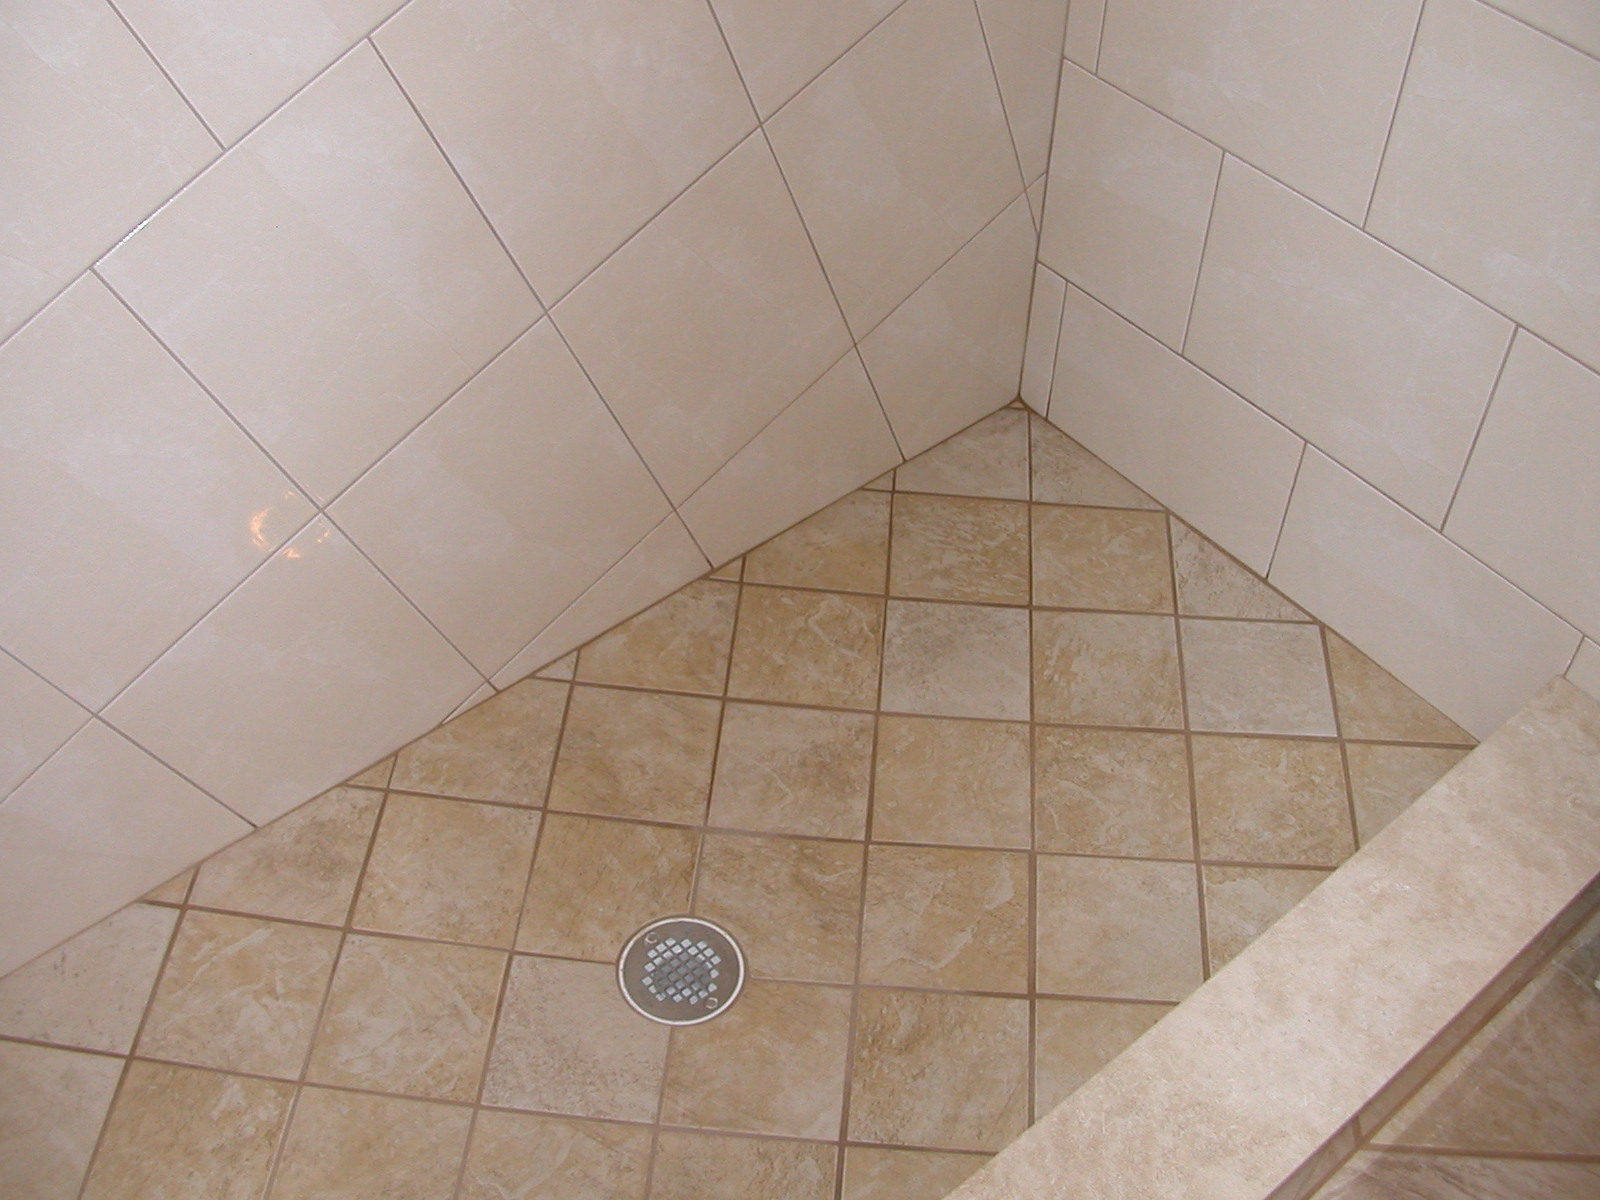 How To Tile A Shower Floor And Walls Image Cabinets And Shower